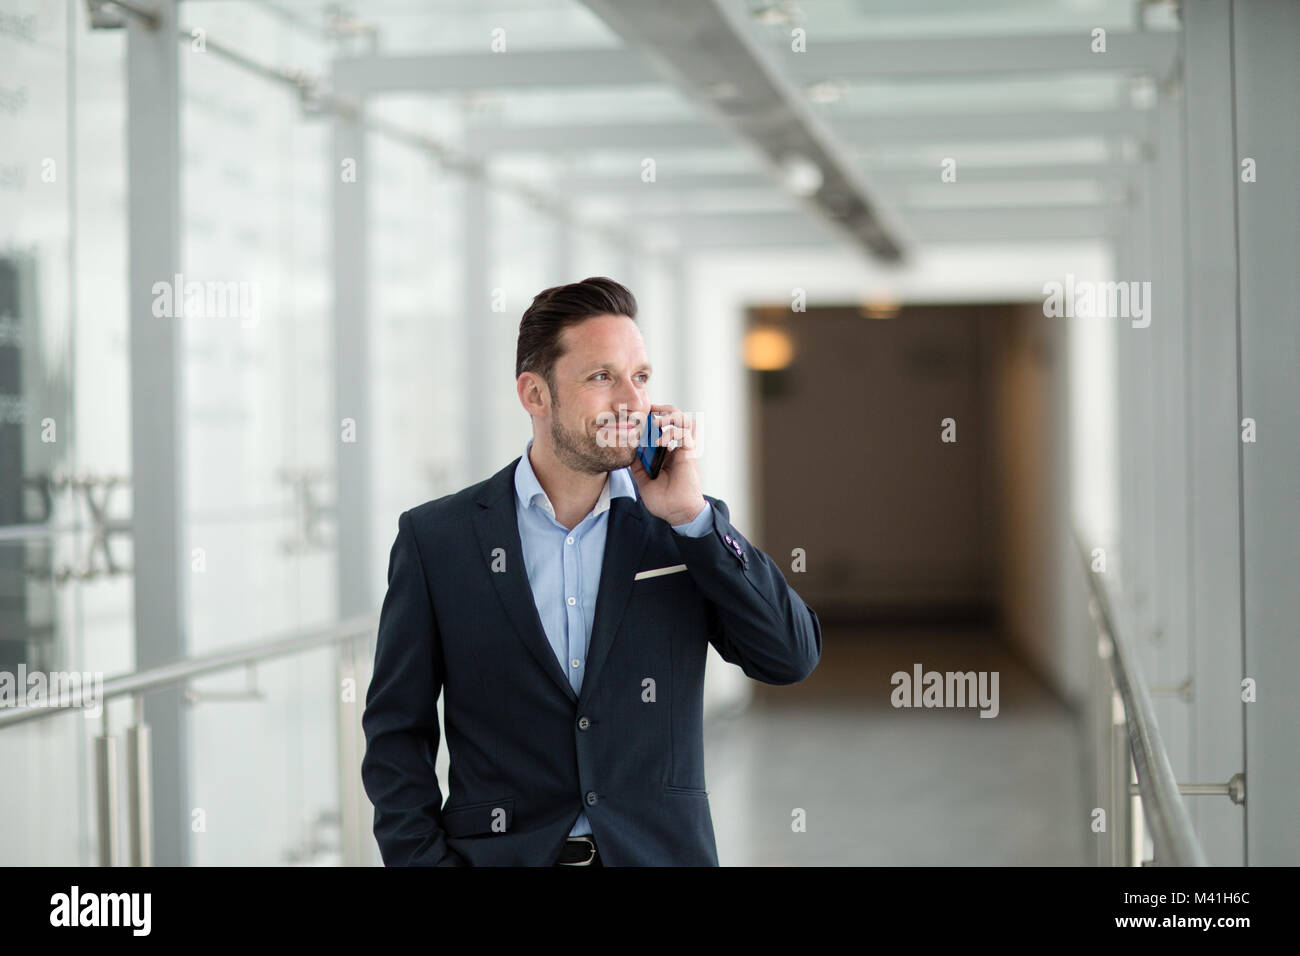 Businessman using smartphone on his commute - Stock Image